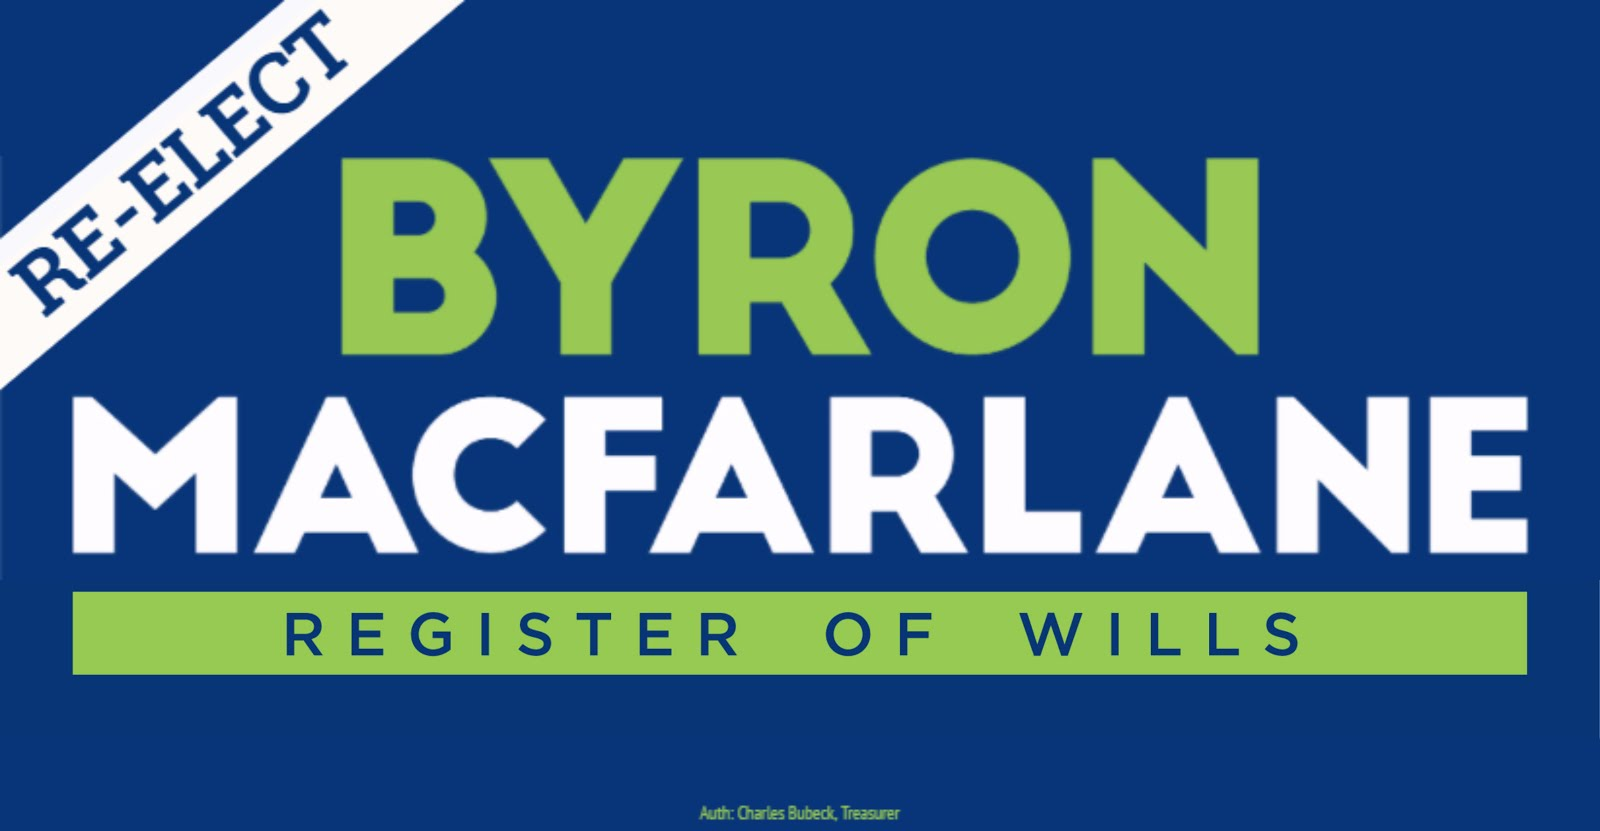 Byron MacFarlane for Register of Wills for Howard County